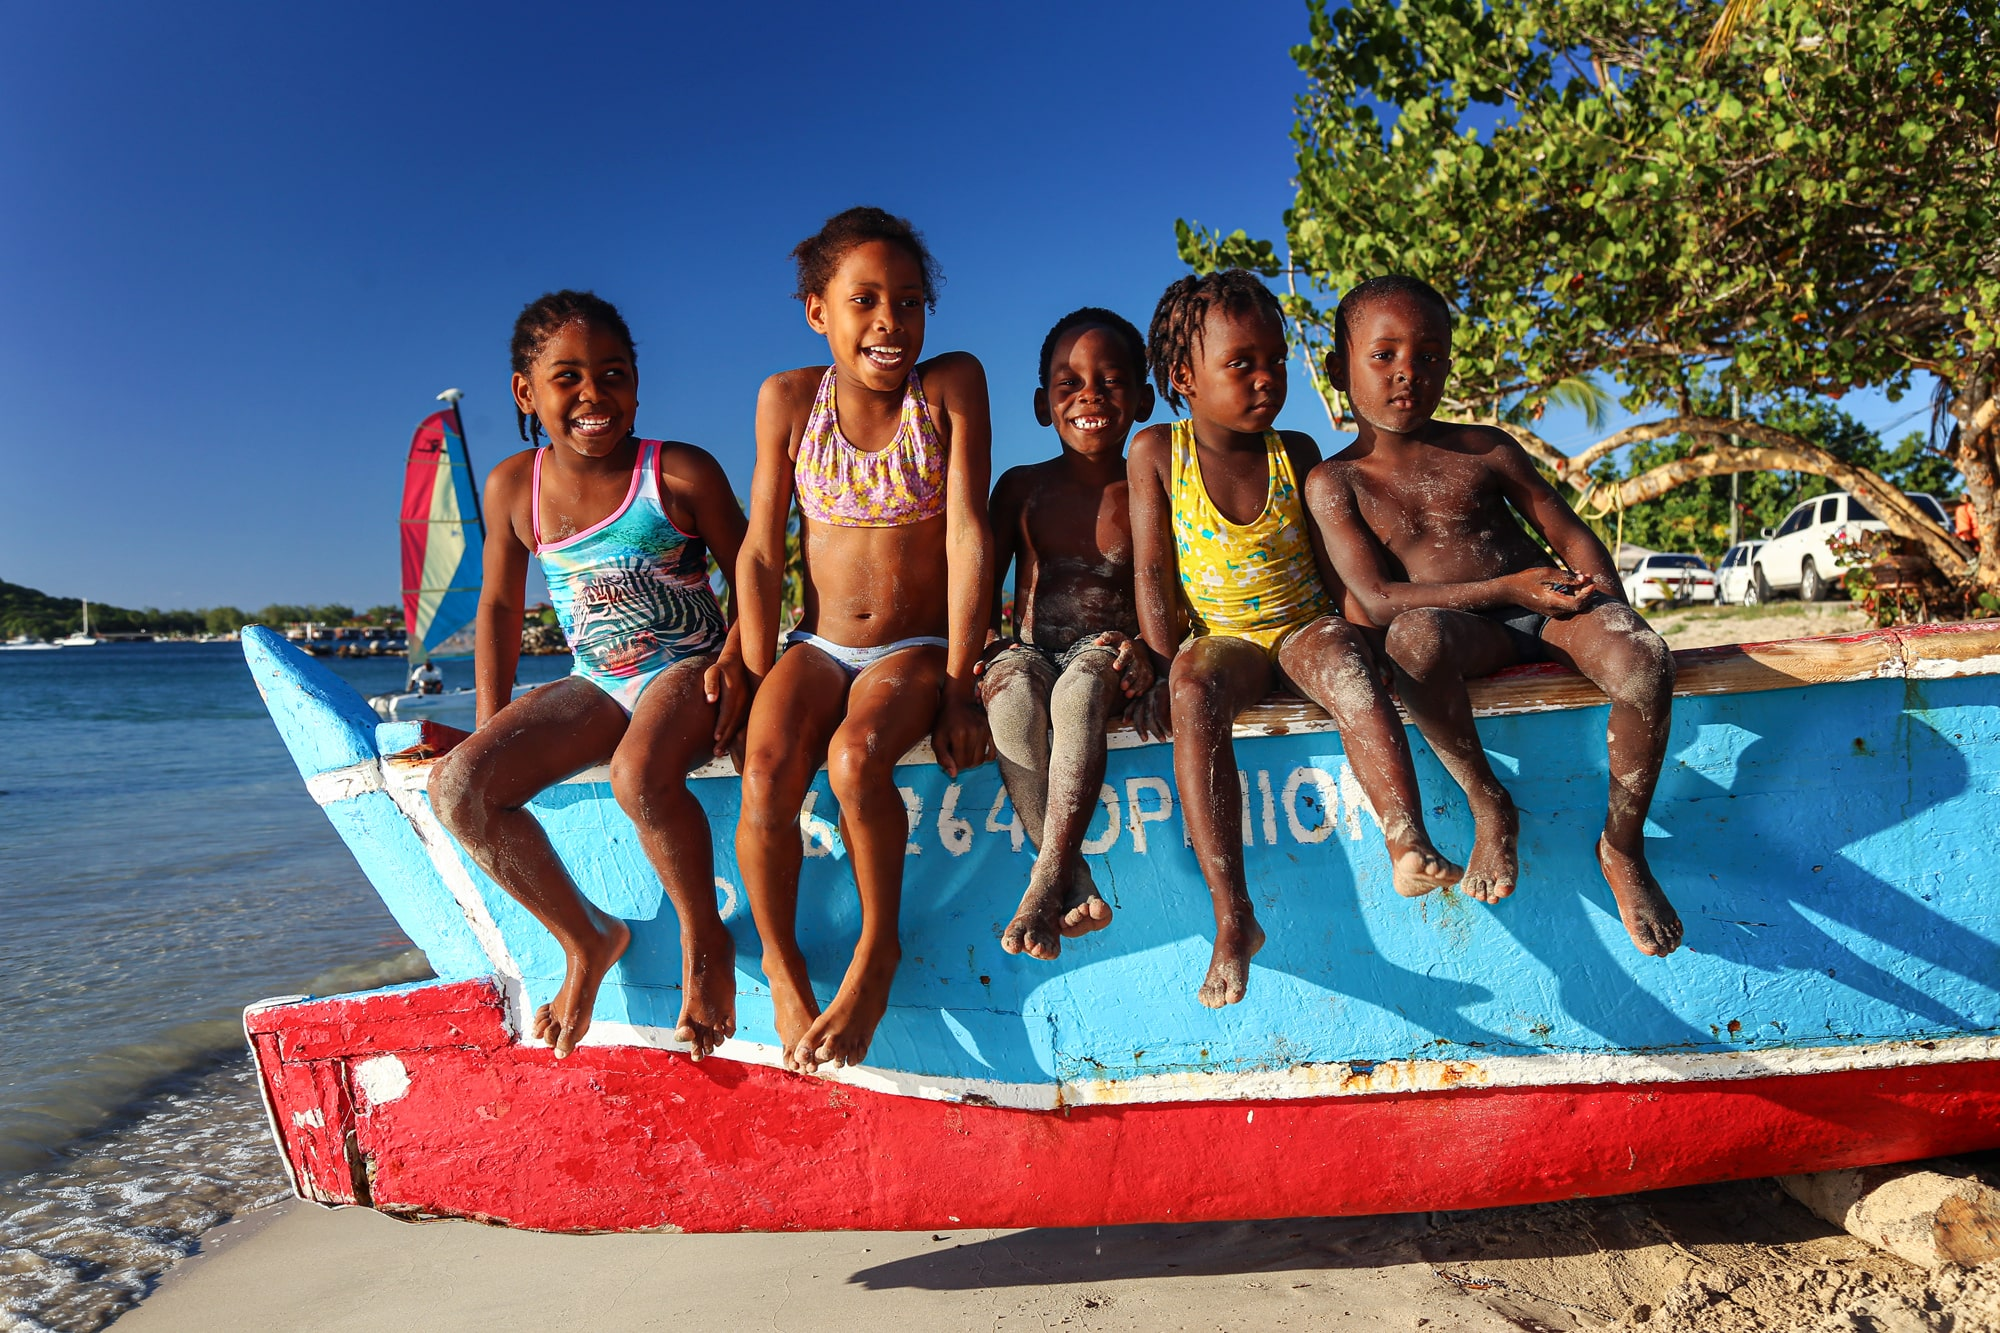 Kids on a boat in St. Lucia, Caribbean